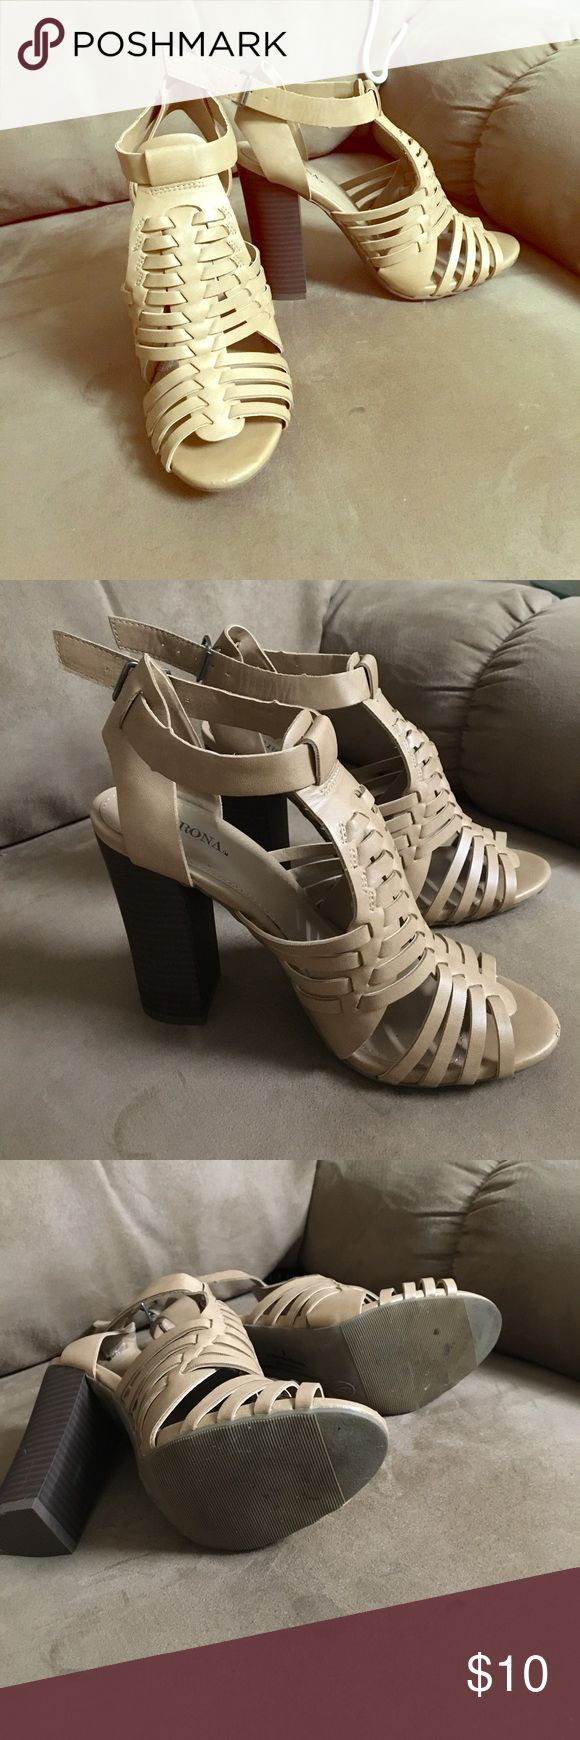 Merona Nude Cage Sandals Sz 6 Worn once, EUC. Adorable summer staple that goes with absolutely everything Merona Shoes Sandals